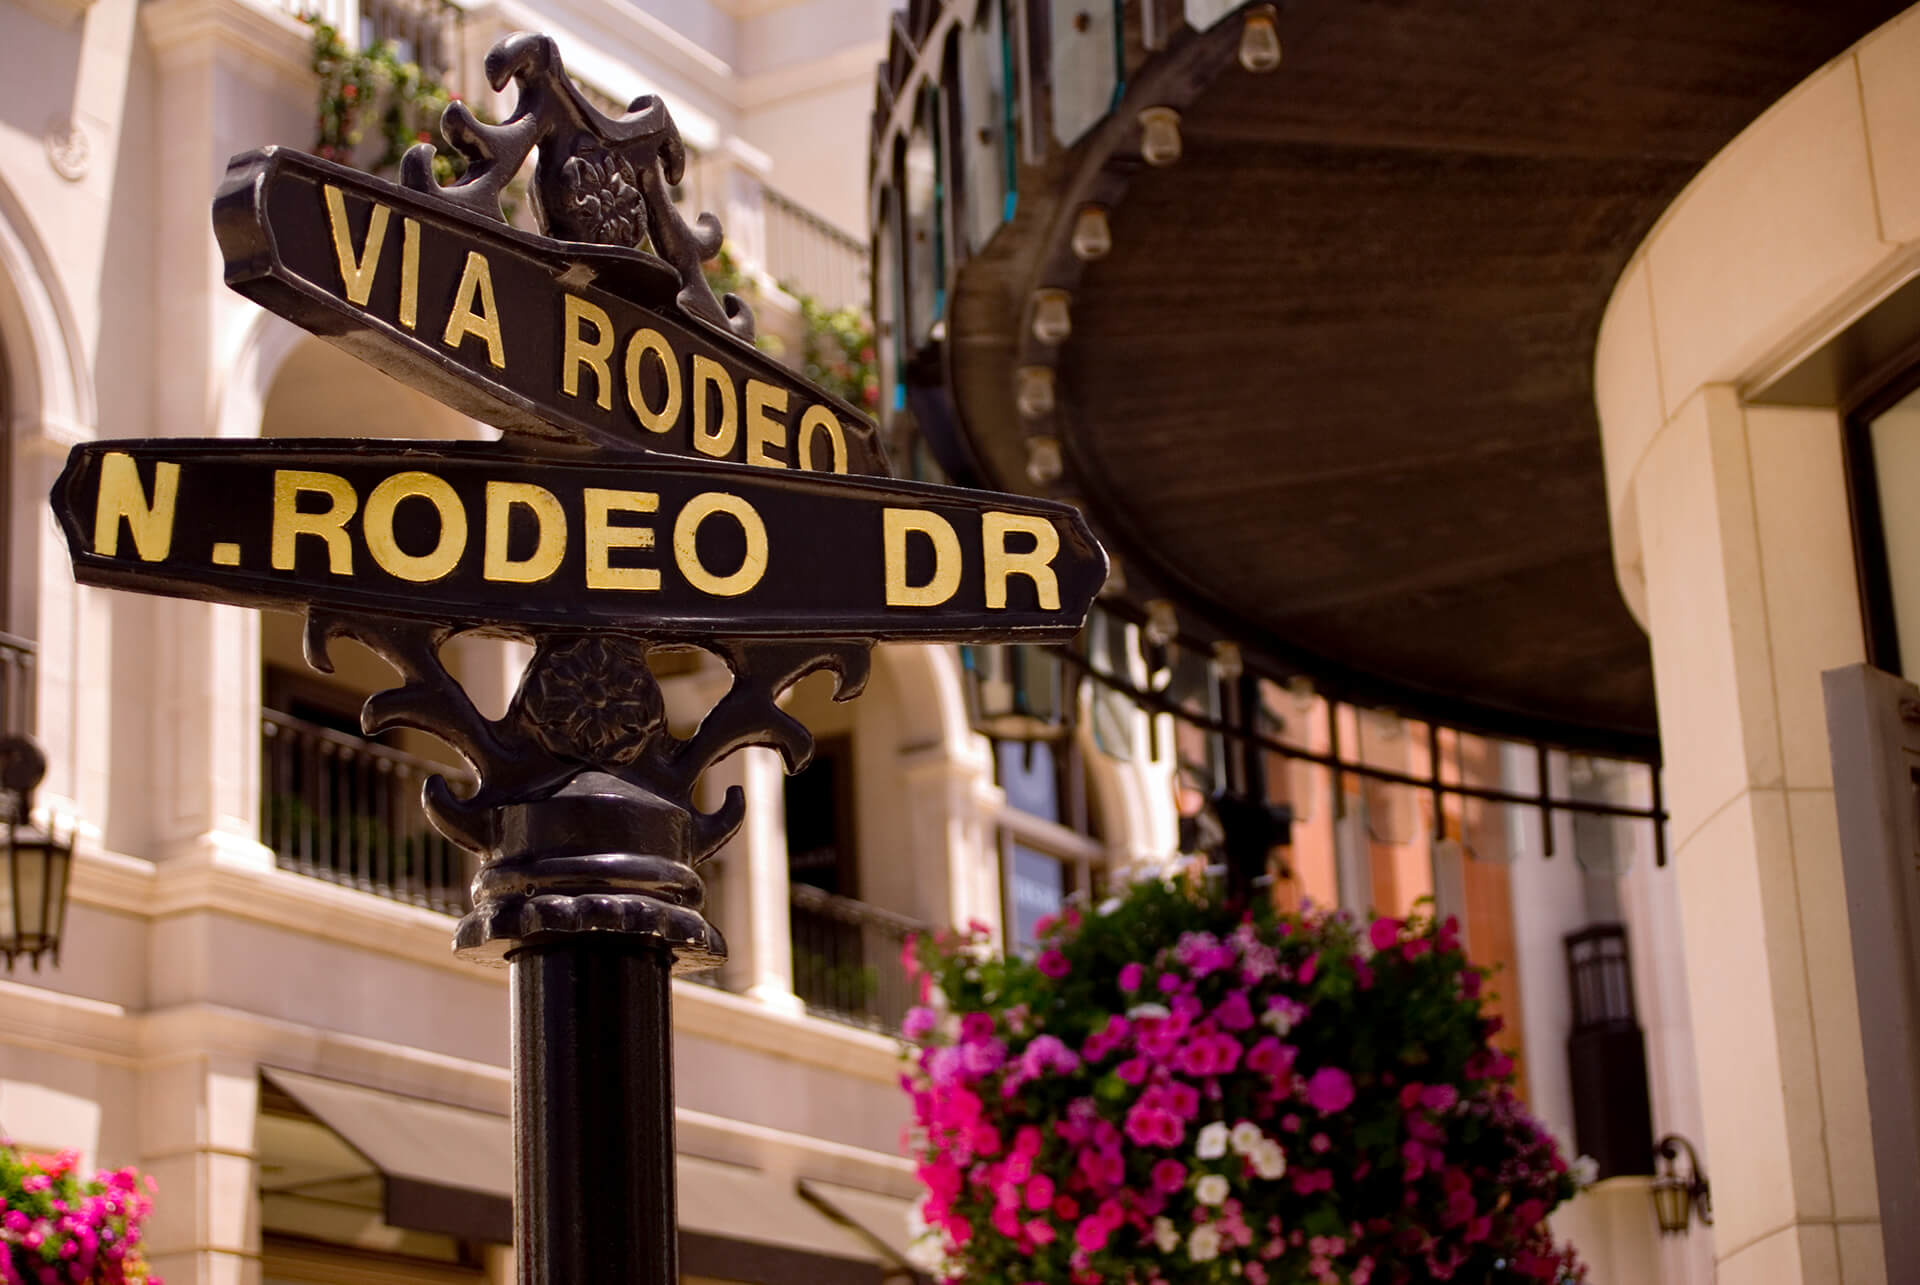 N Rodeo Dr. Street Sign